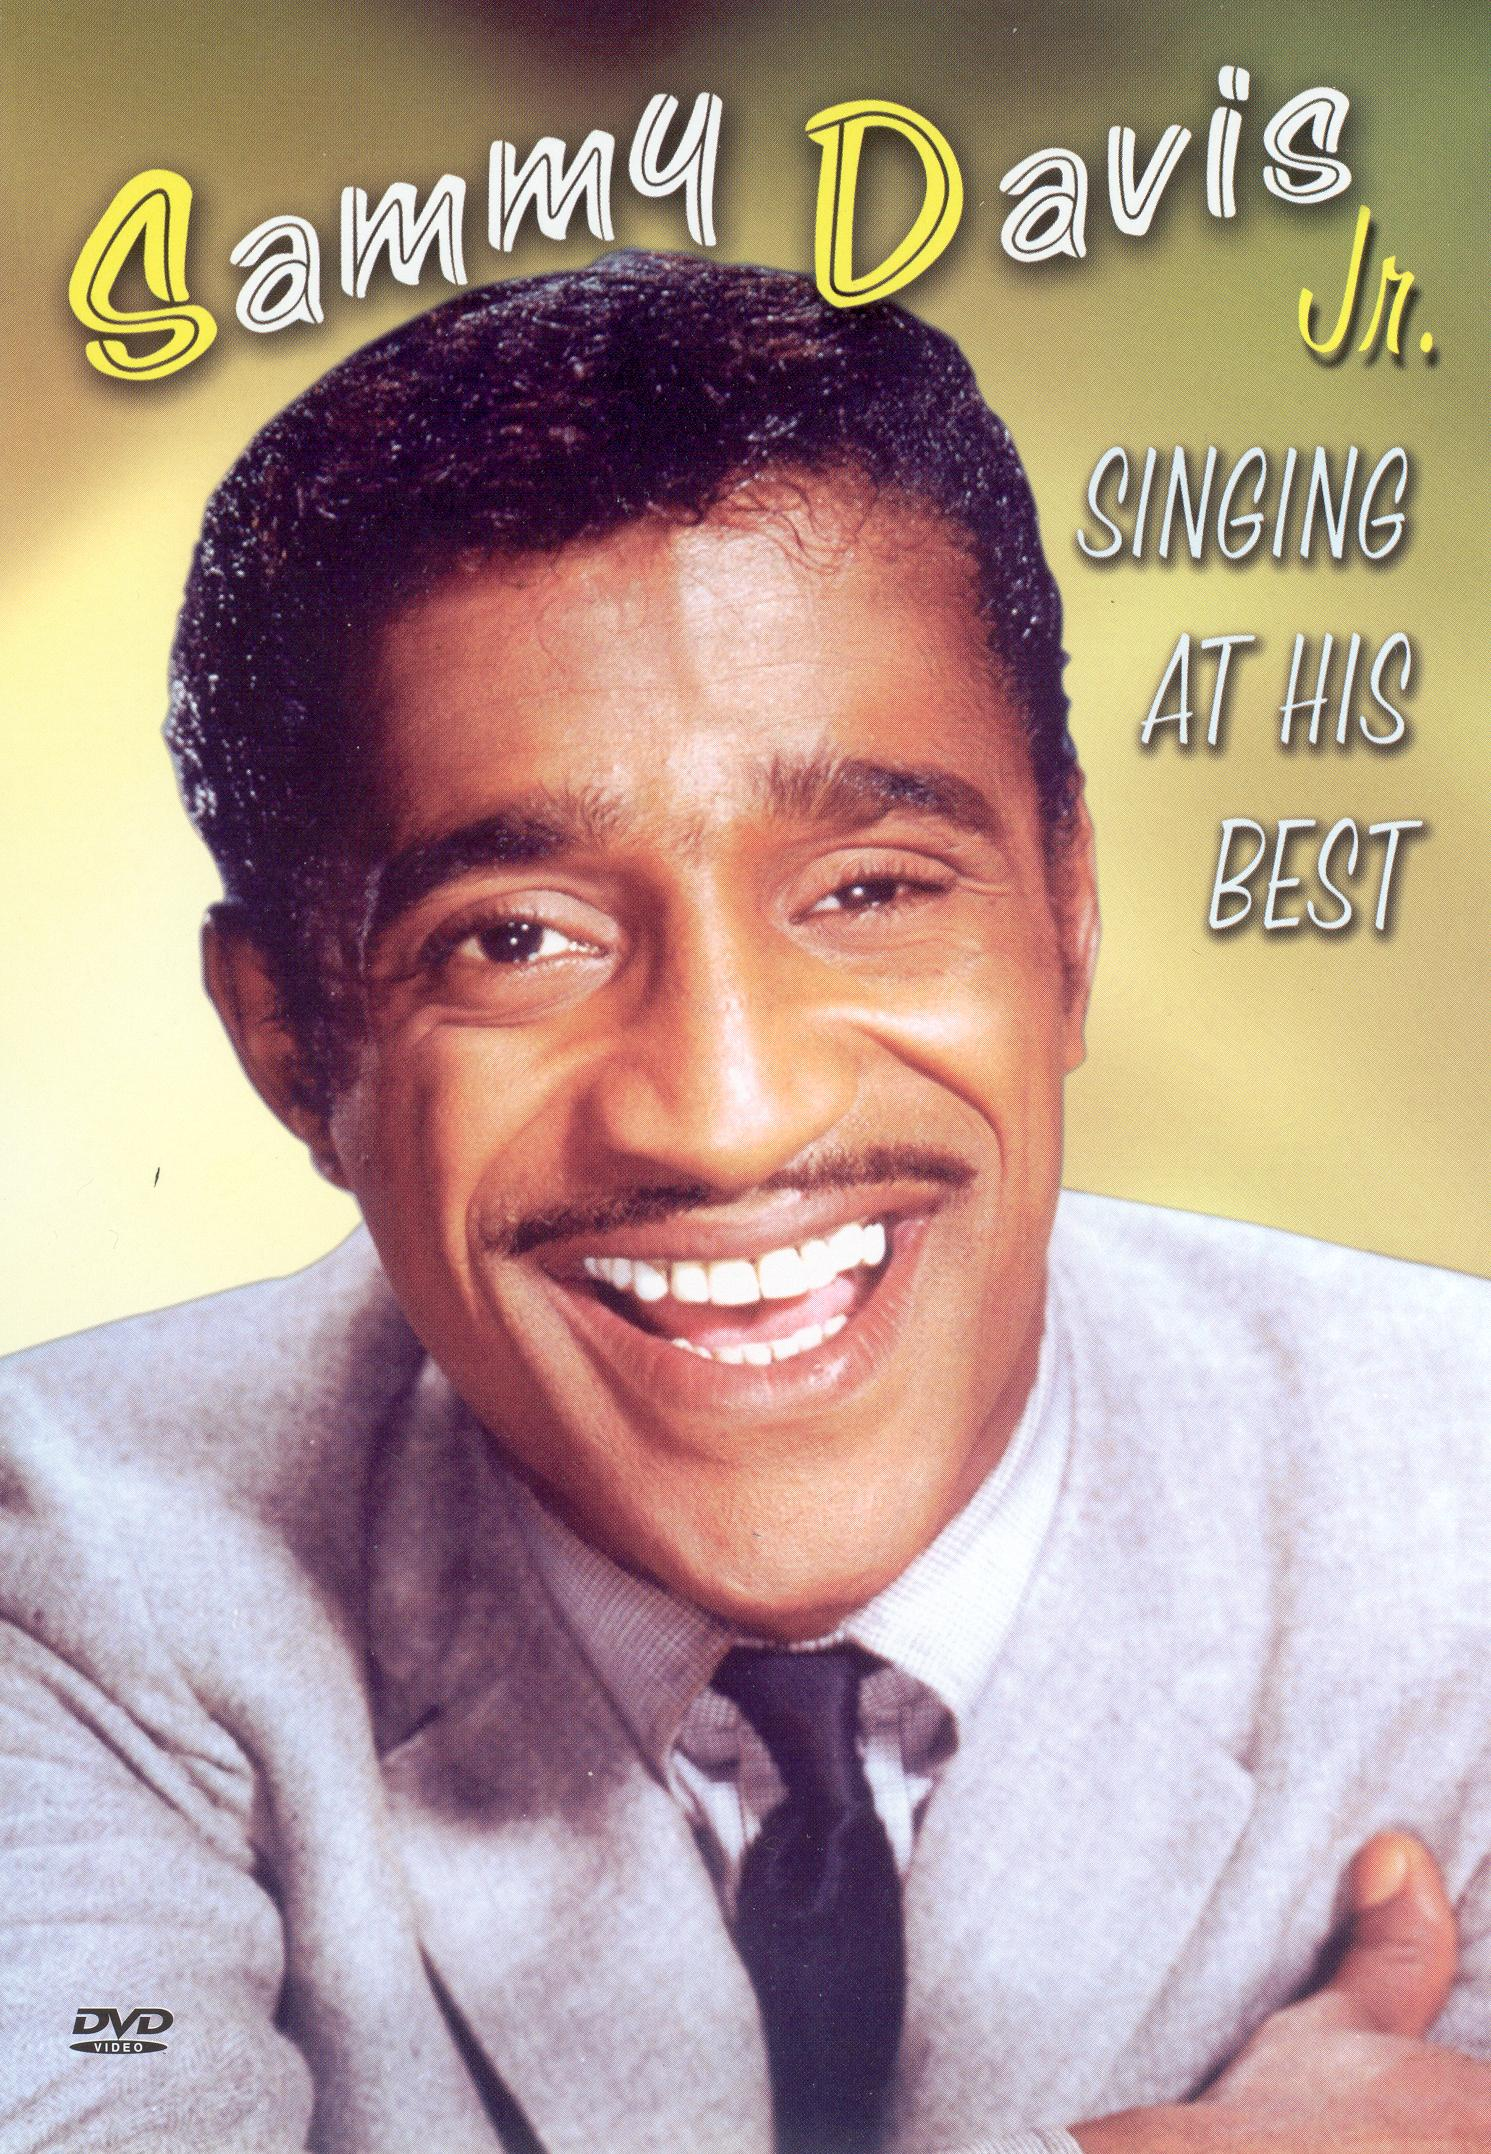 Sammy Davis, Jr.: Singing at His Best